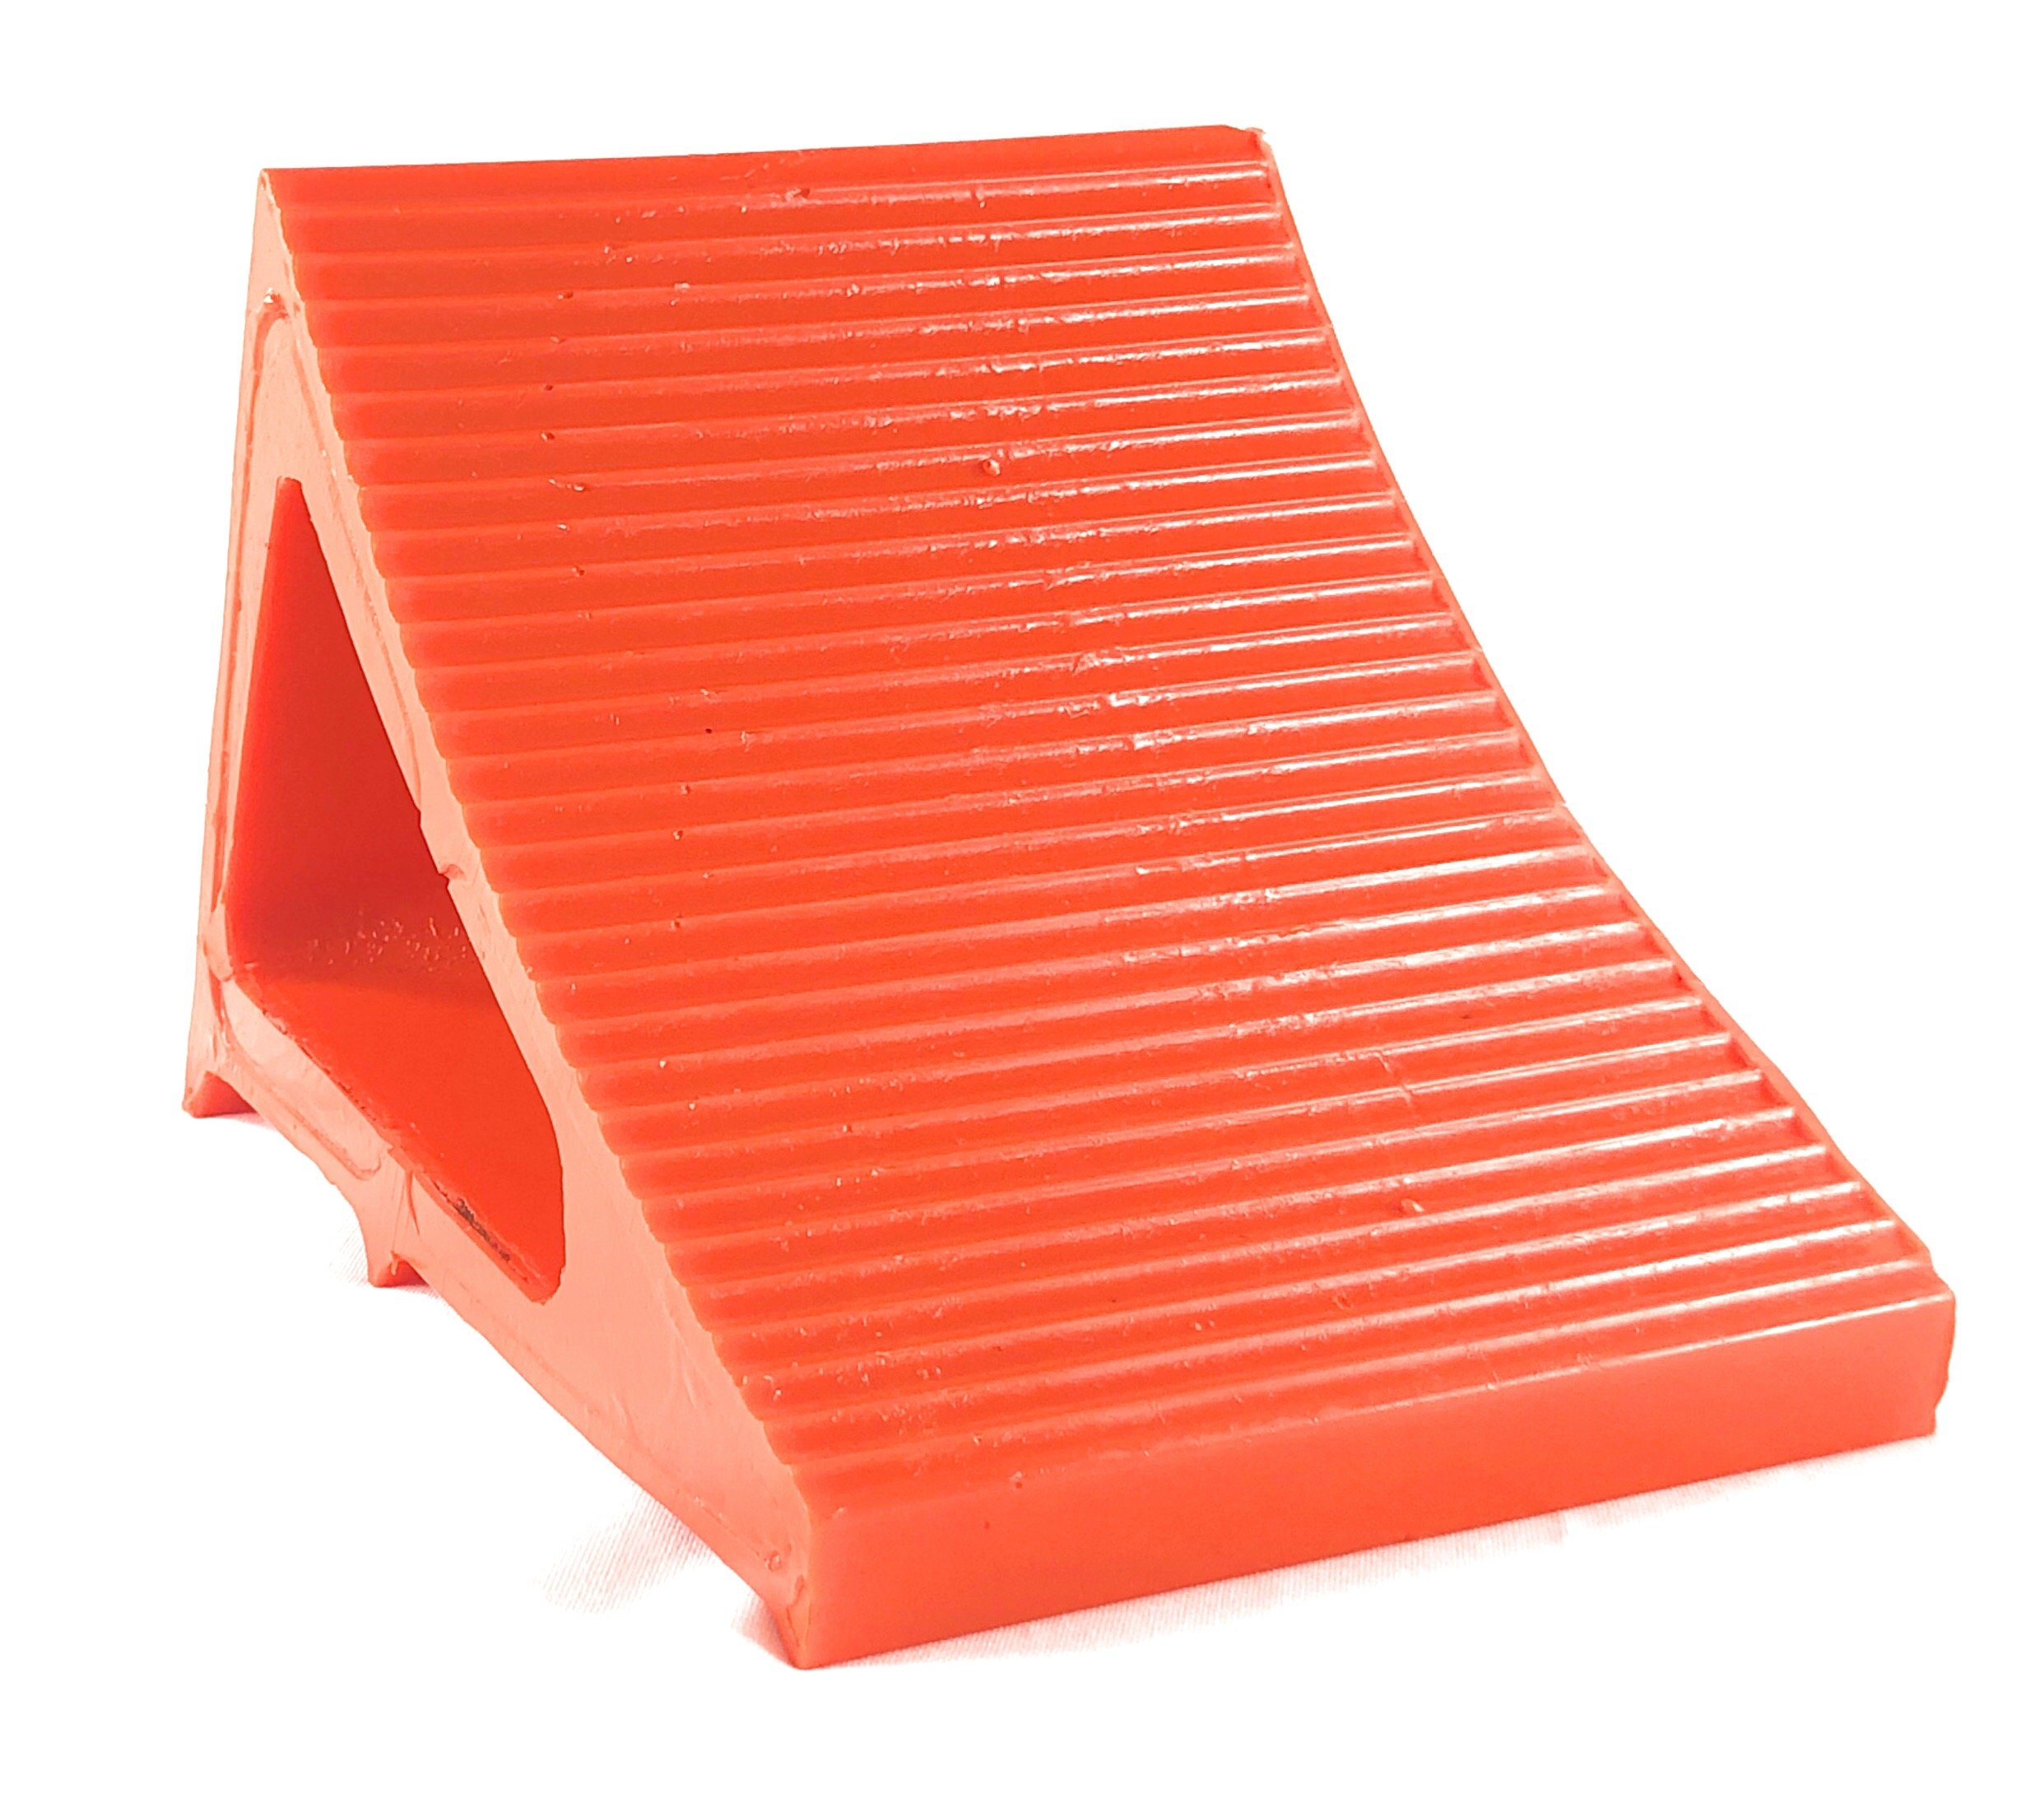 Elasco Wheel Chock, Weatherproof, Outdoor Grade, Polyurethane better than Rubber or Plastic, Keeps Your Trailer or RV In Place, 5 Year Warranty (2 Pack, Orange) by Elasco Products (Image #2)